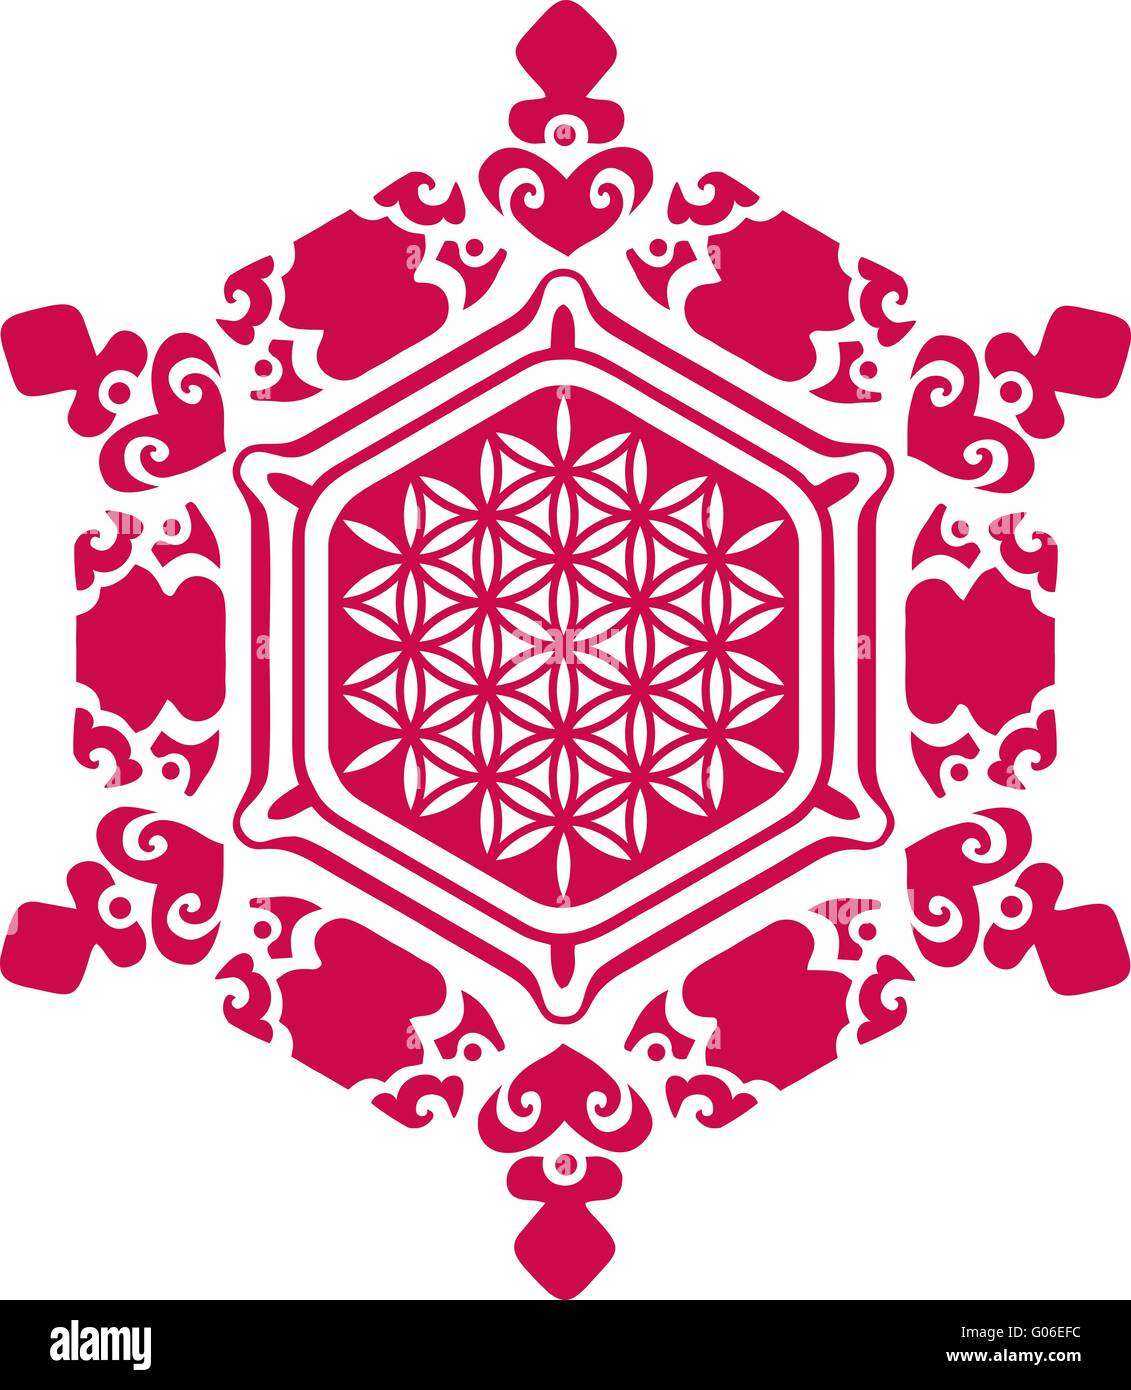 Water Crystal Love - Flower of Life - Stock Image